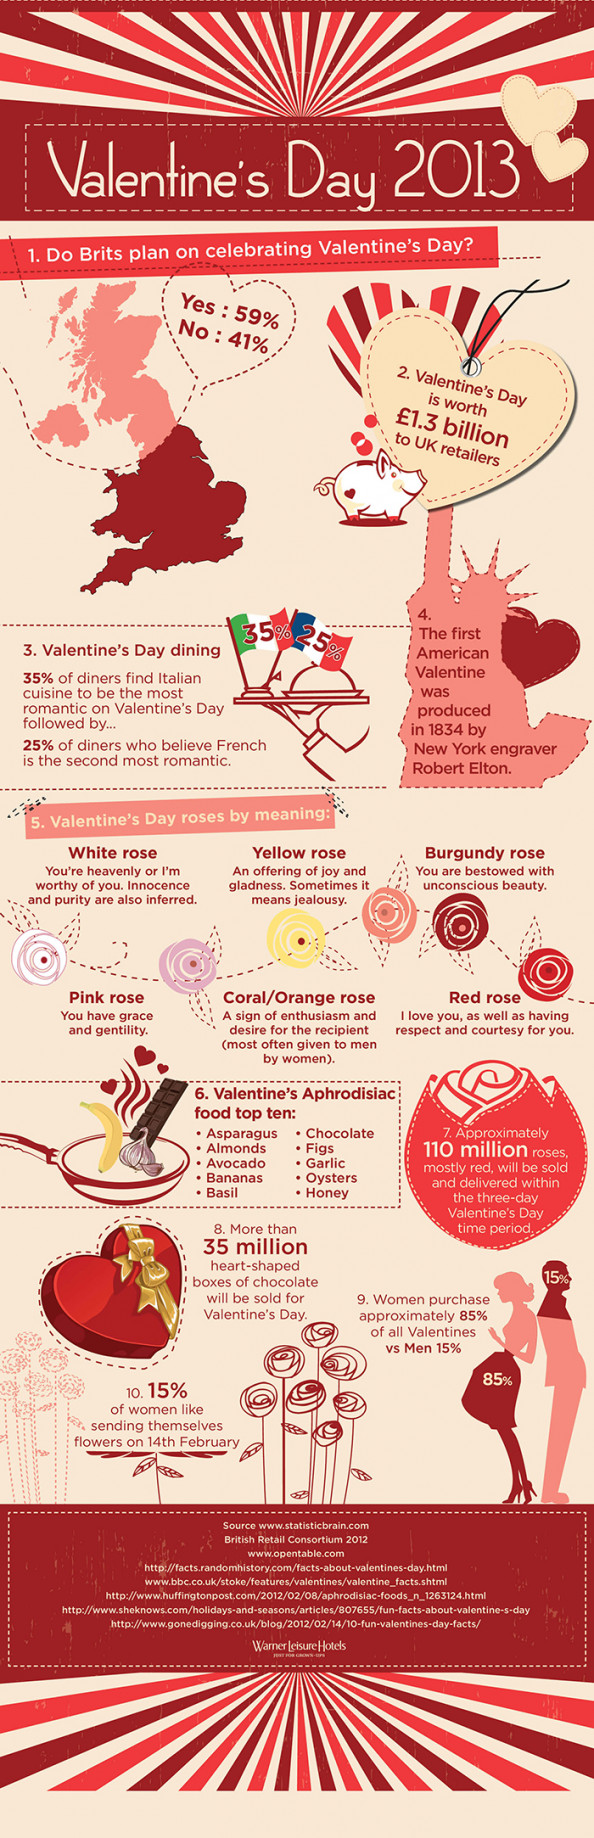 Valentine&#039;s Day 2013 Infographic